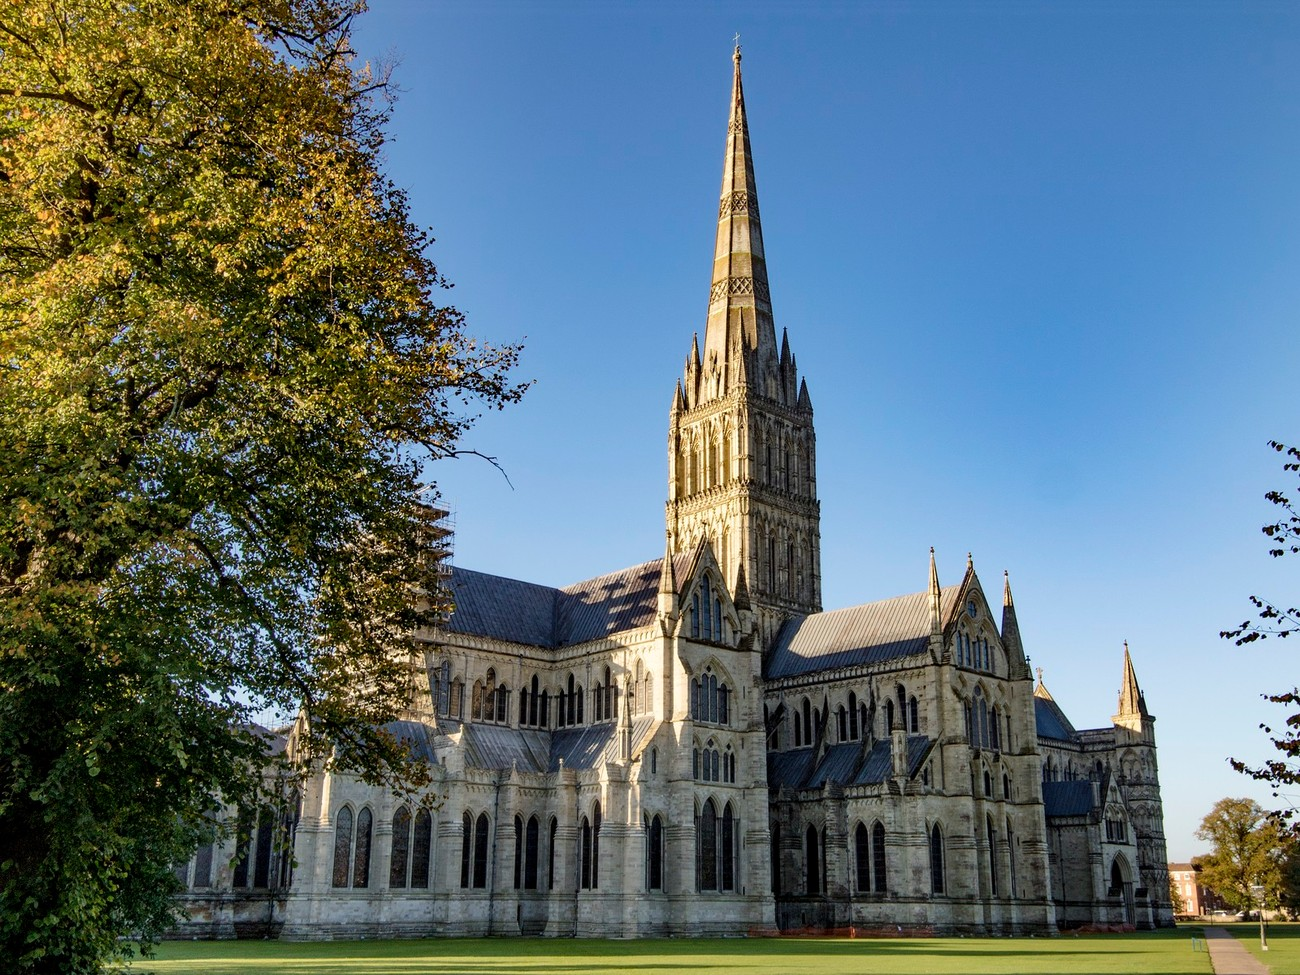 Salisbury Cathedral was built during the 12th and 13th centuries AD at its current location in the centre of Salisbury, UK. An earlier cathedral existed at Old Sarum castle a few miles away. The cathedral spire is the tallest spire in Europe  but was an addition to the original plan in the 13th century. Today it looks as if it is sloping to one side, which it is. This is because the tower it was placed on was not constructed to carry the weight of the spire.